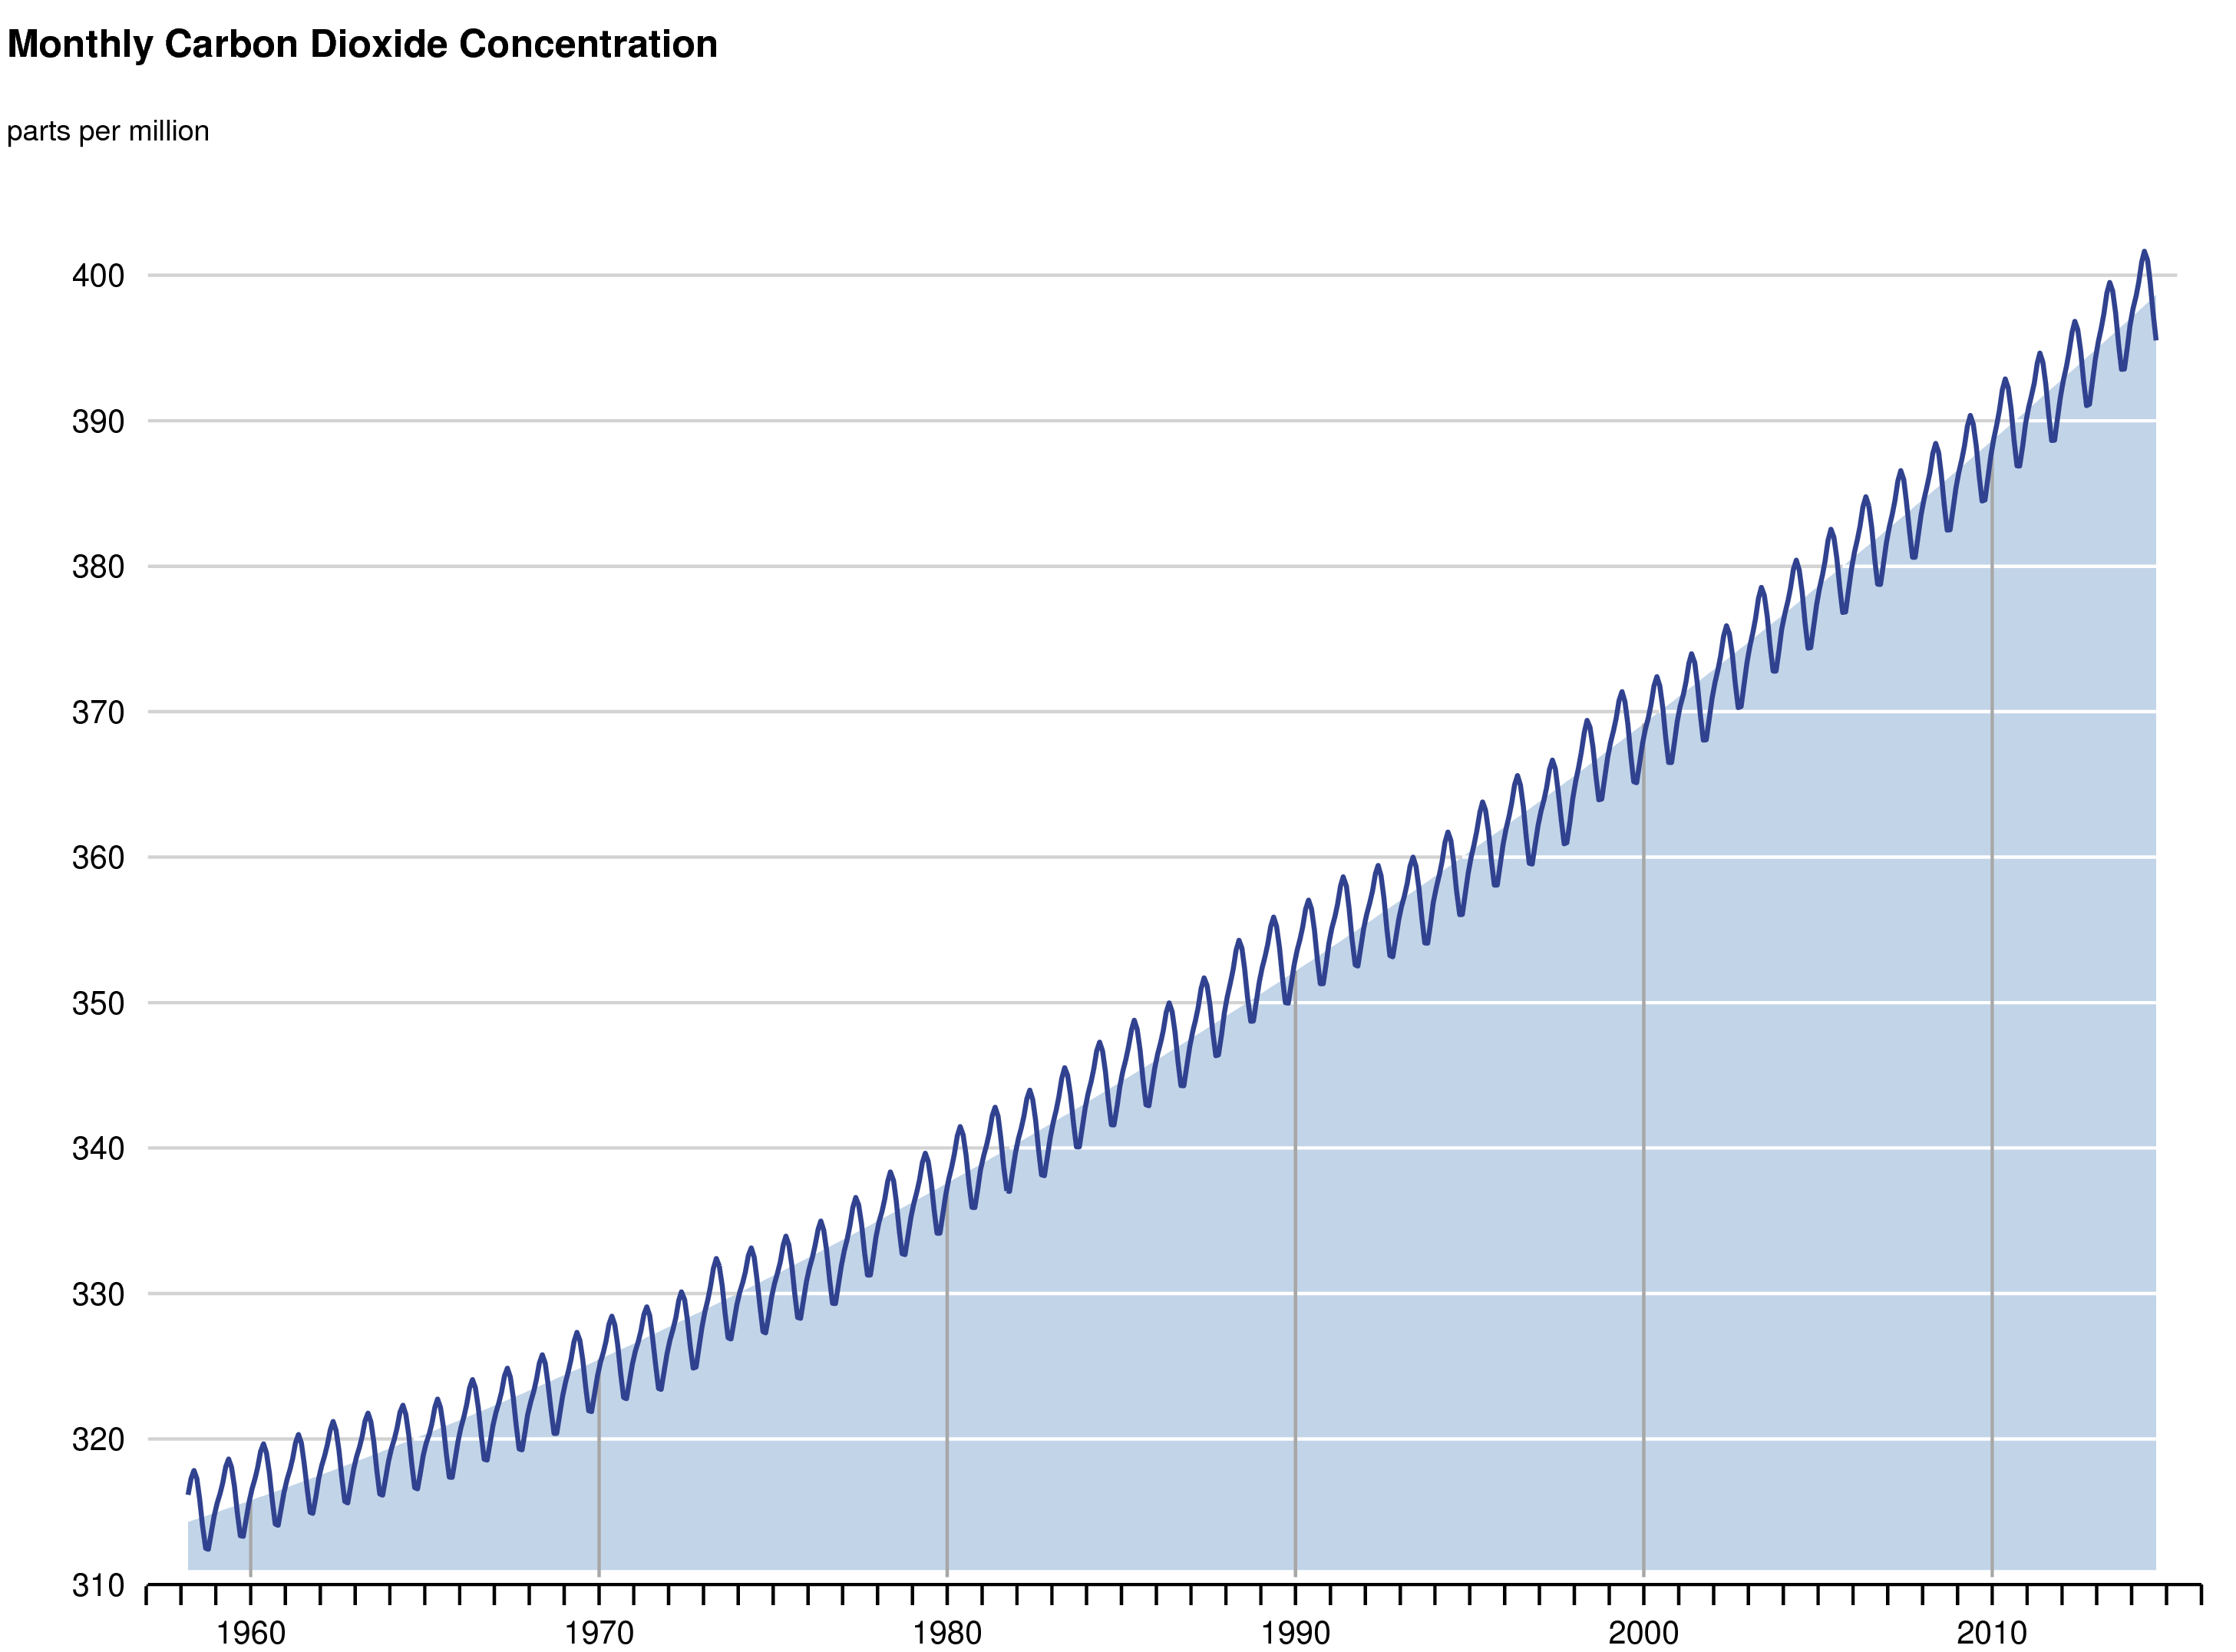 The Keeling curve plots atmospheric carbon dioxide. The upward slope represents increases in CO2 levels caused by burning fossil fuels. The wiggles represent seasonal swings in atmospheric CO2 levels that occur as plants bloom, grow, die and decay every year. Image credit: Scripps Institution of Oceanography